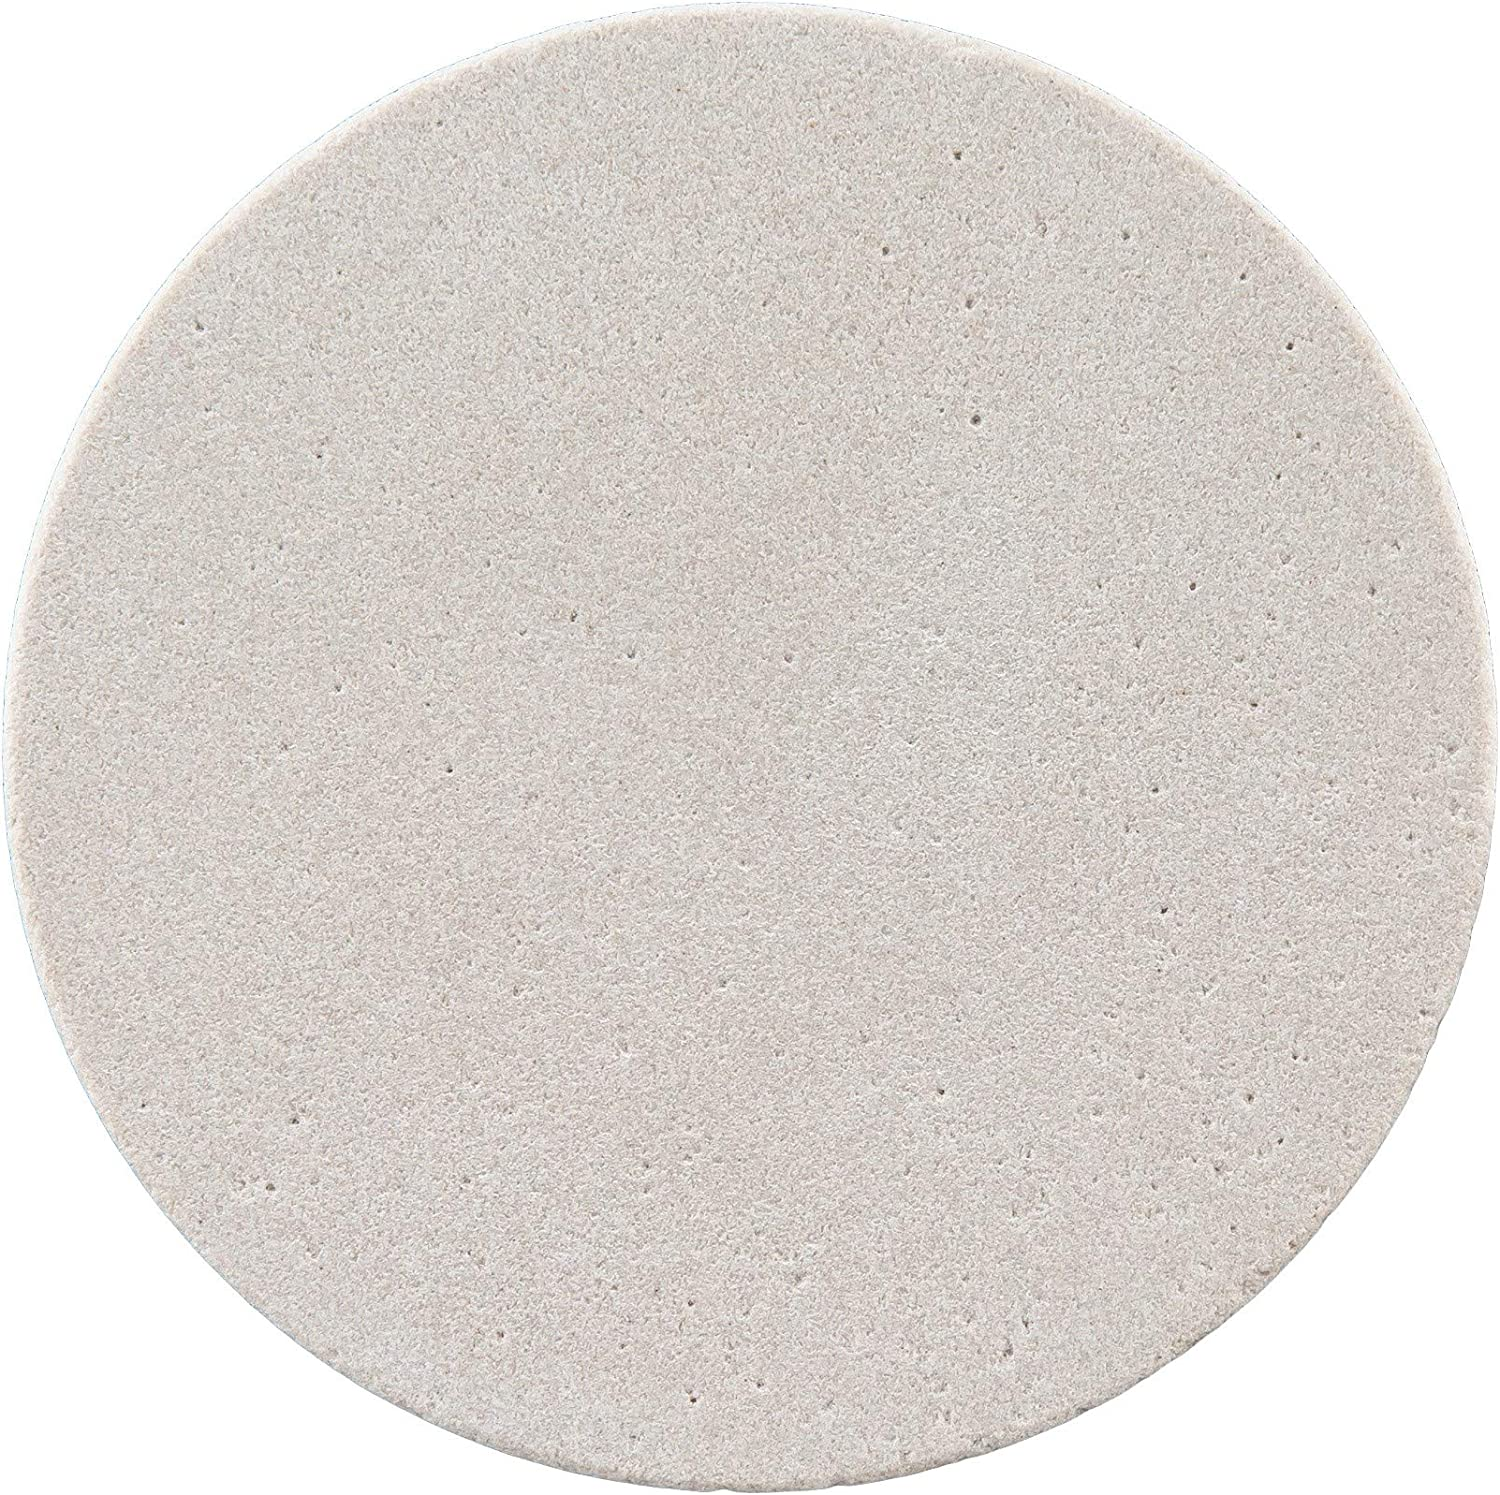 Thirstystone Sandstone Coaster, Pack of 4